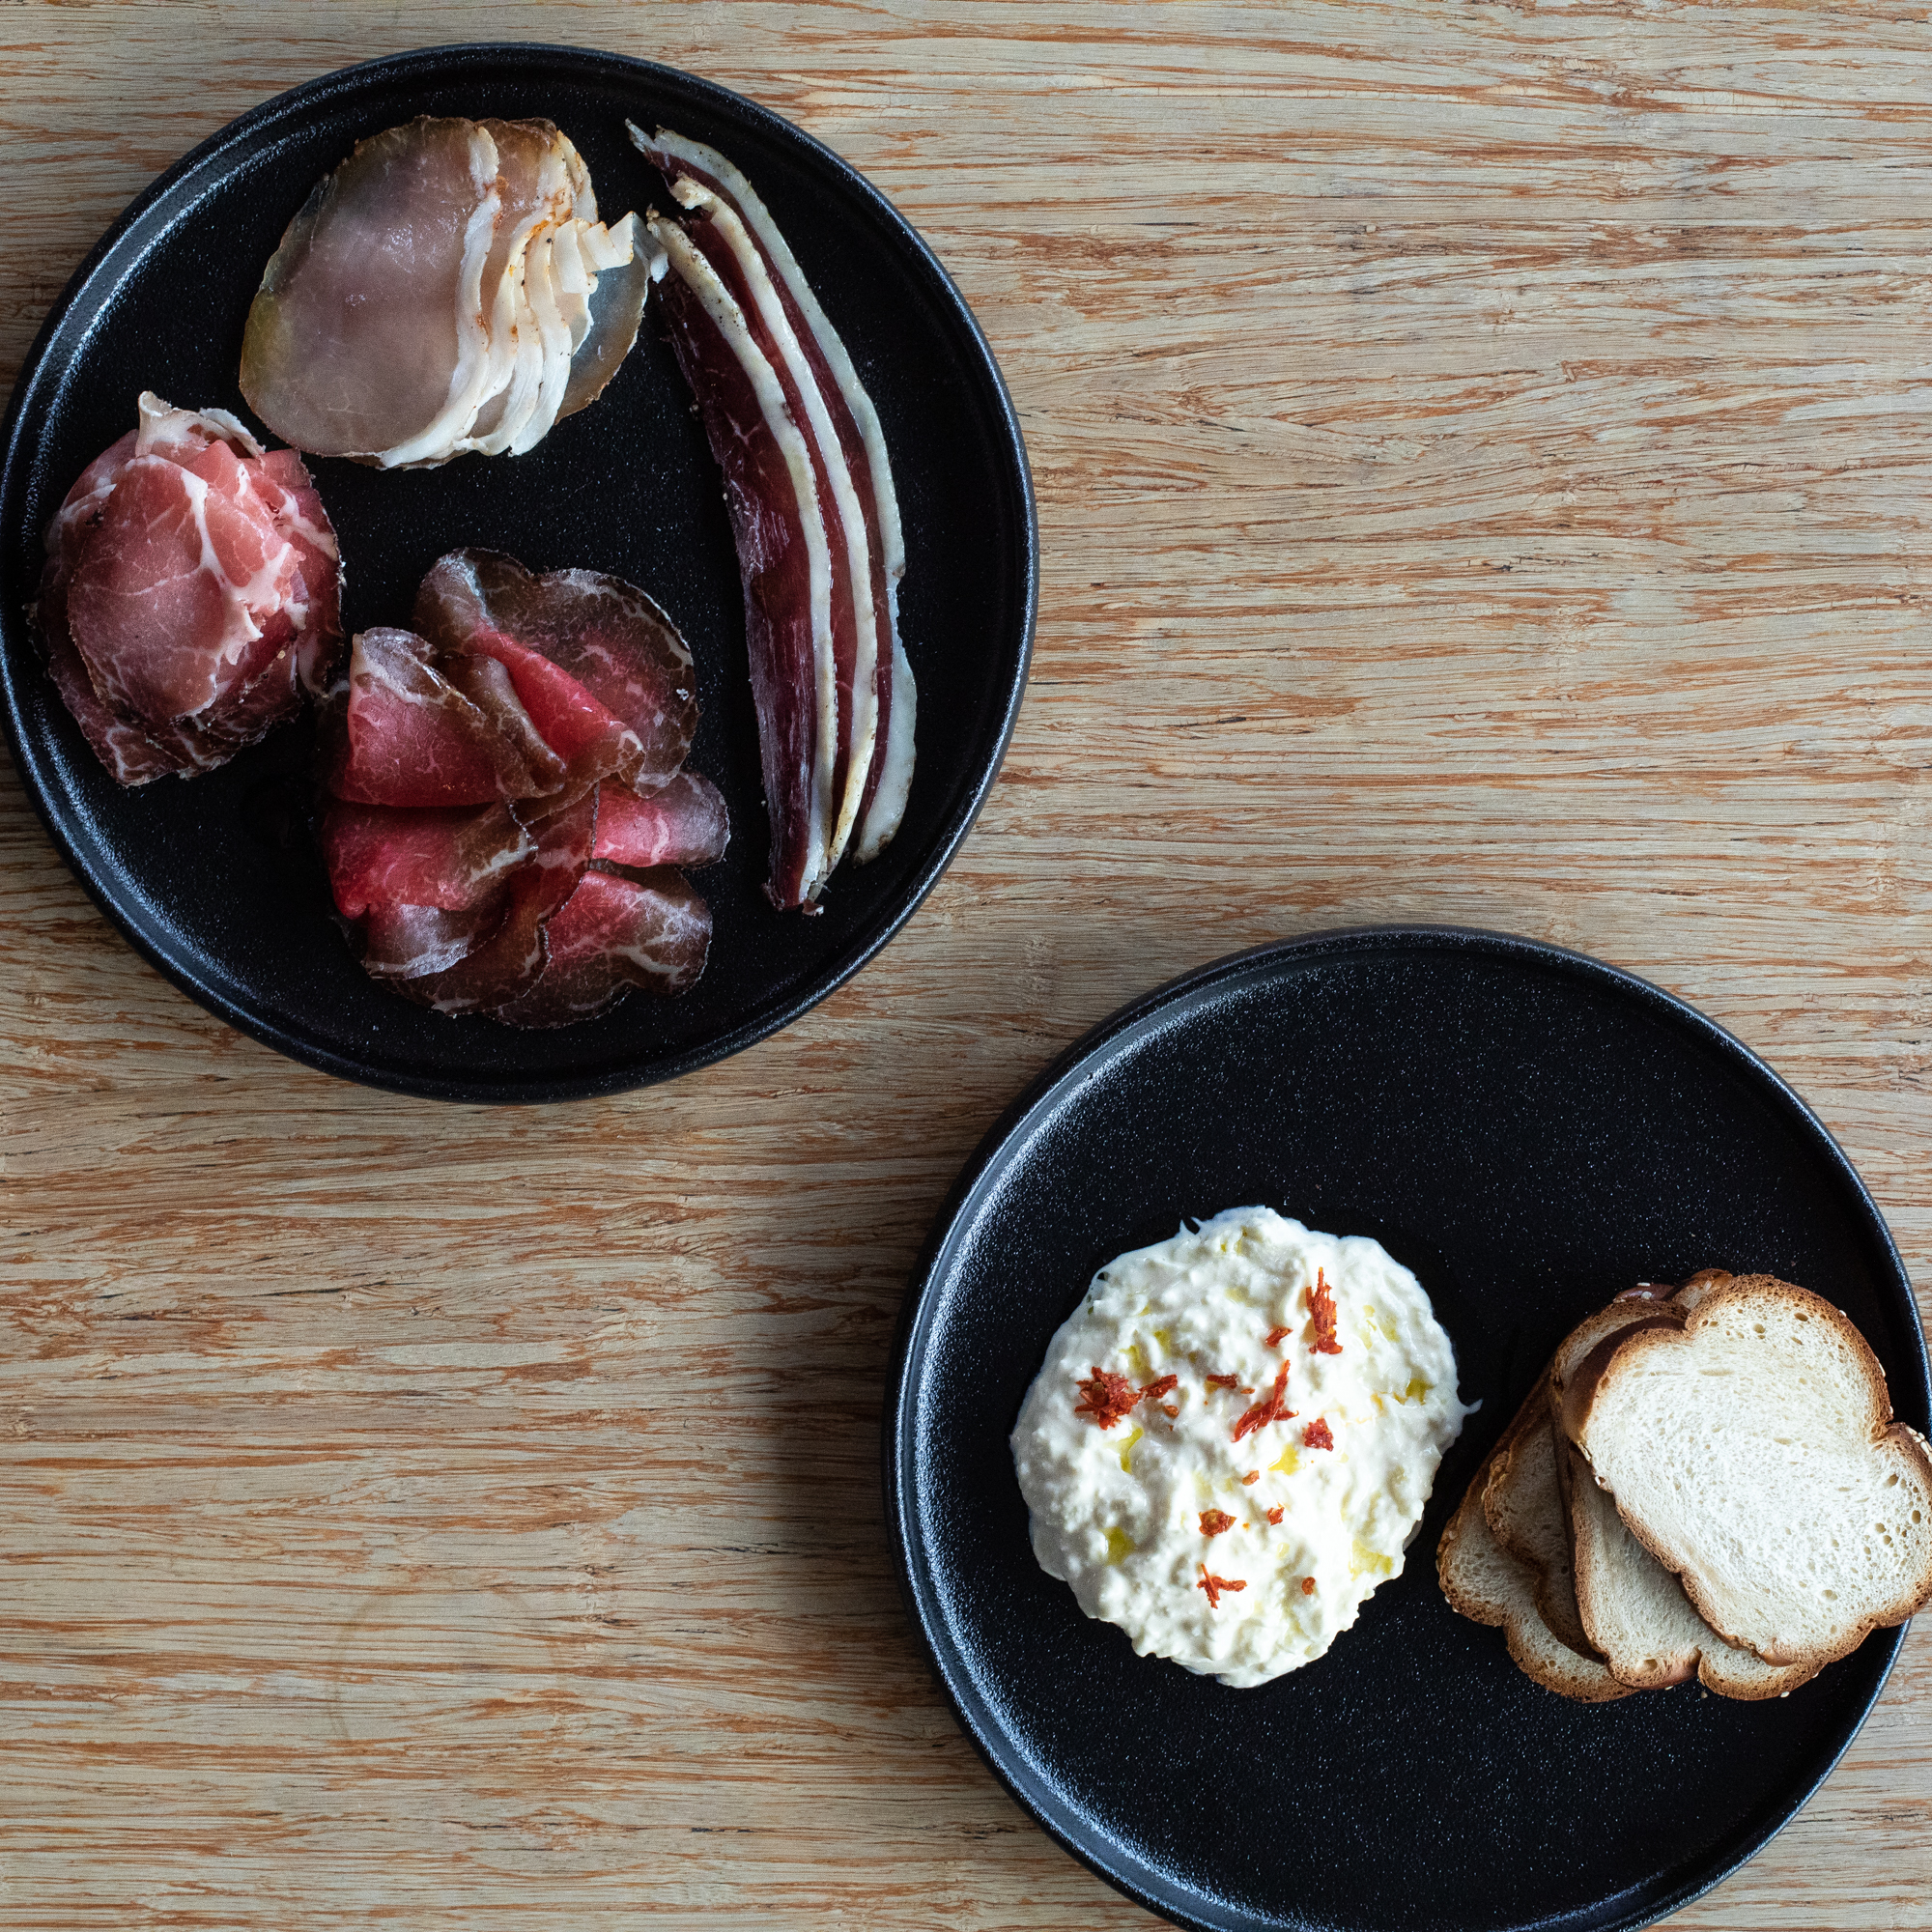 Cured Meats, Cheese and Bread